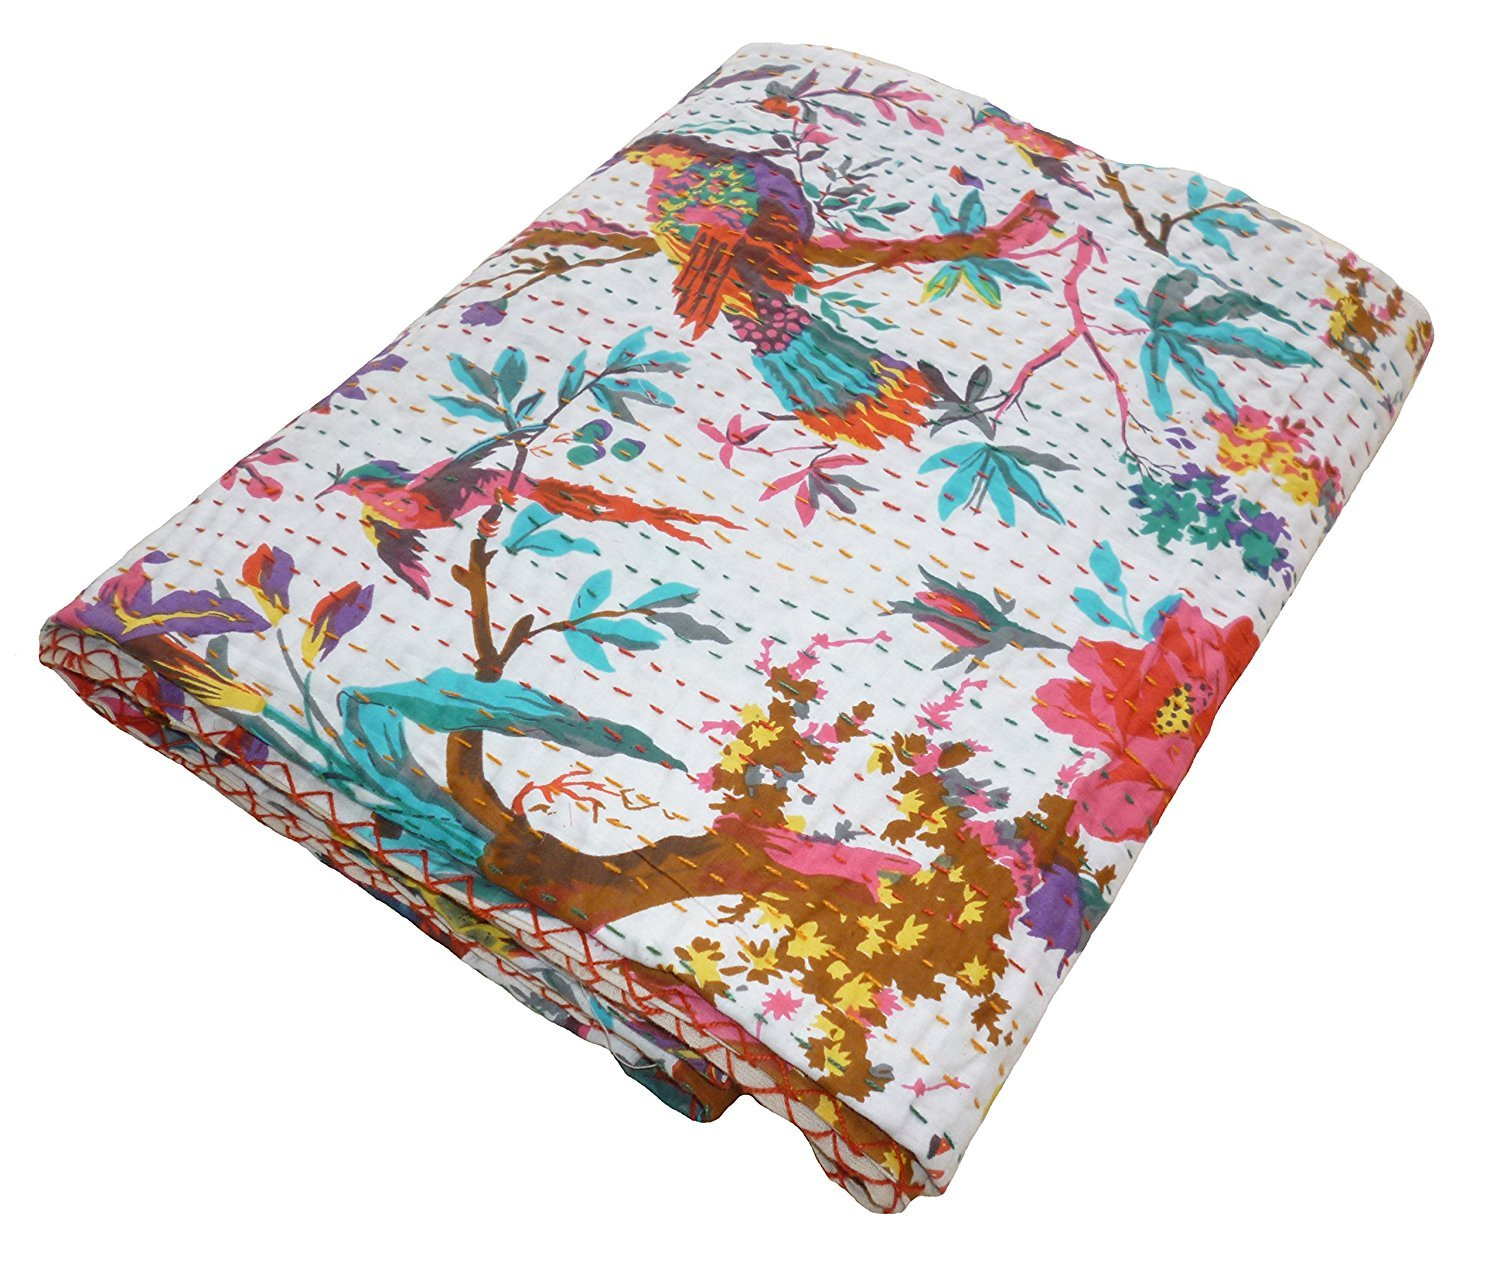 Cheap khushvin BIRD PRINTED Kantha Quilt Throw, AC RALLY QUILT Kantha Blanket, Bed Cover, King Kantha Bedspread, Bohemian Bedding Kantha Size 90 Inch X 108 Inch supplier